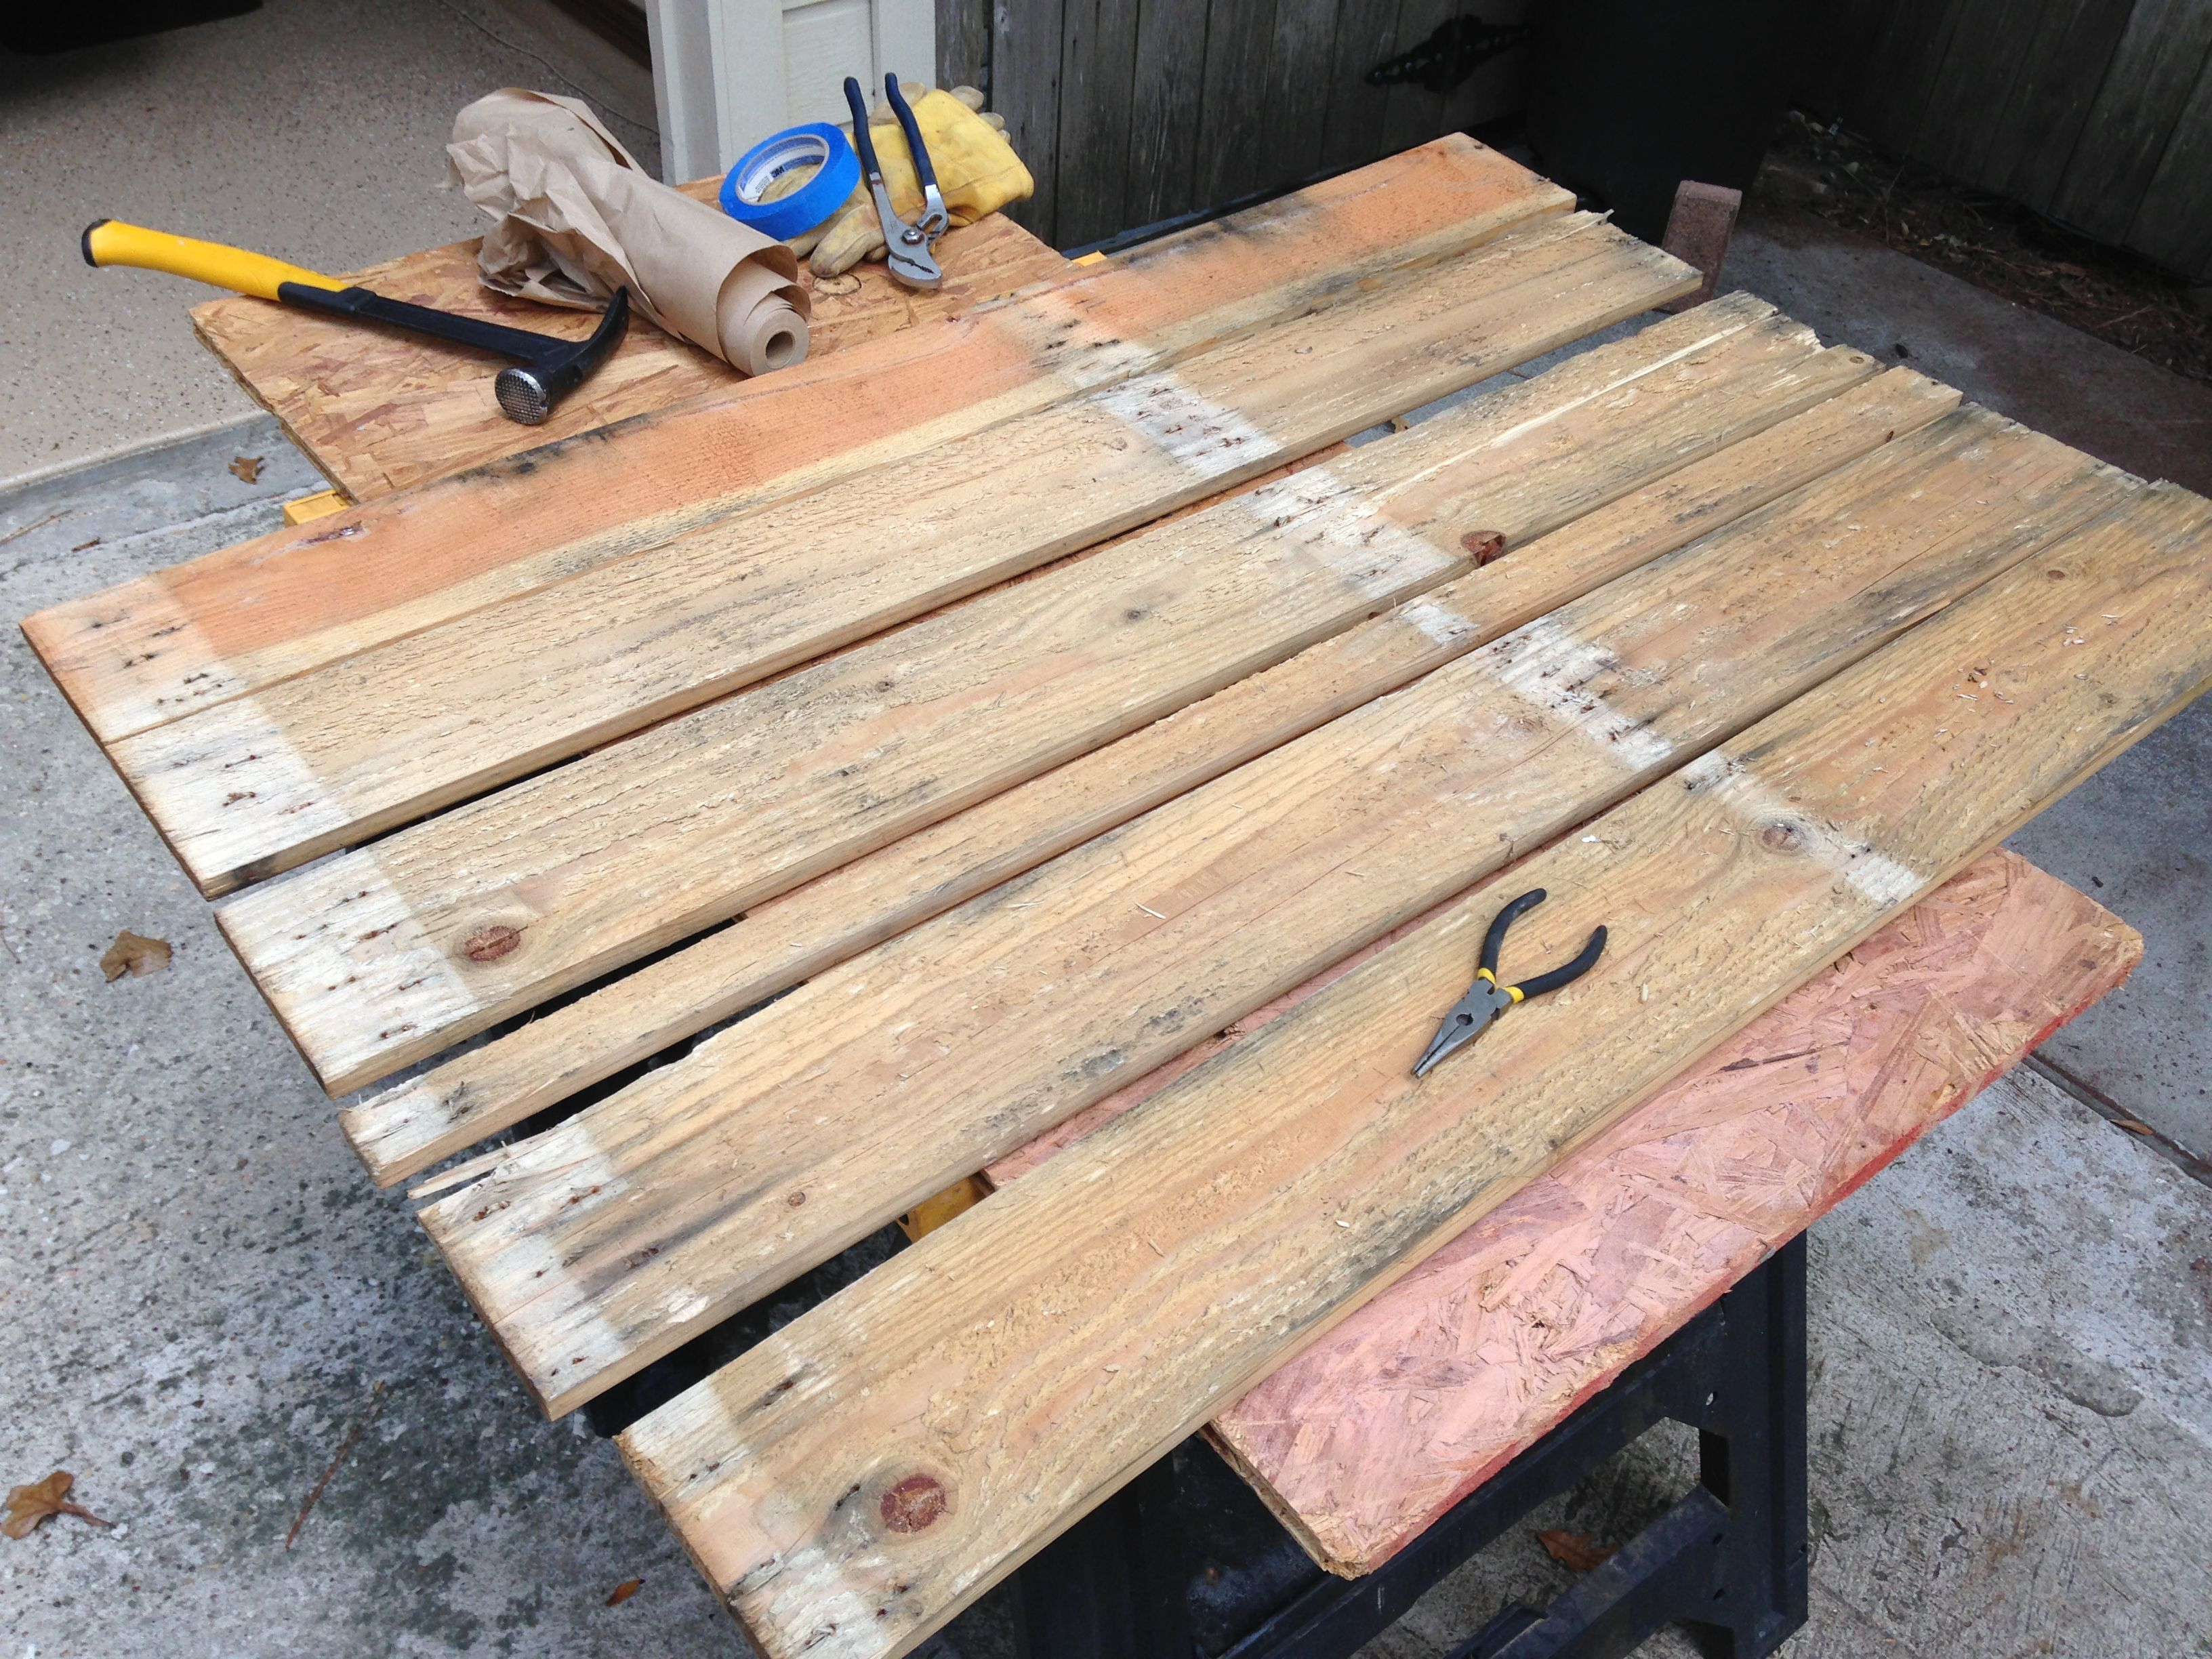 Disassemble Wood Pallet And Remove Nails And Staples Etc Wood Pallets Wood Pallet Projects Pallet Crafts